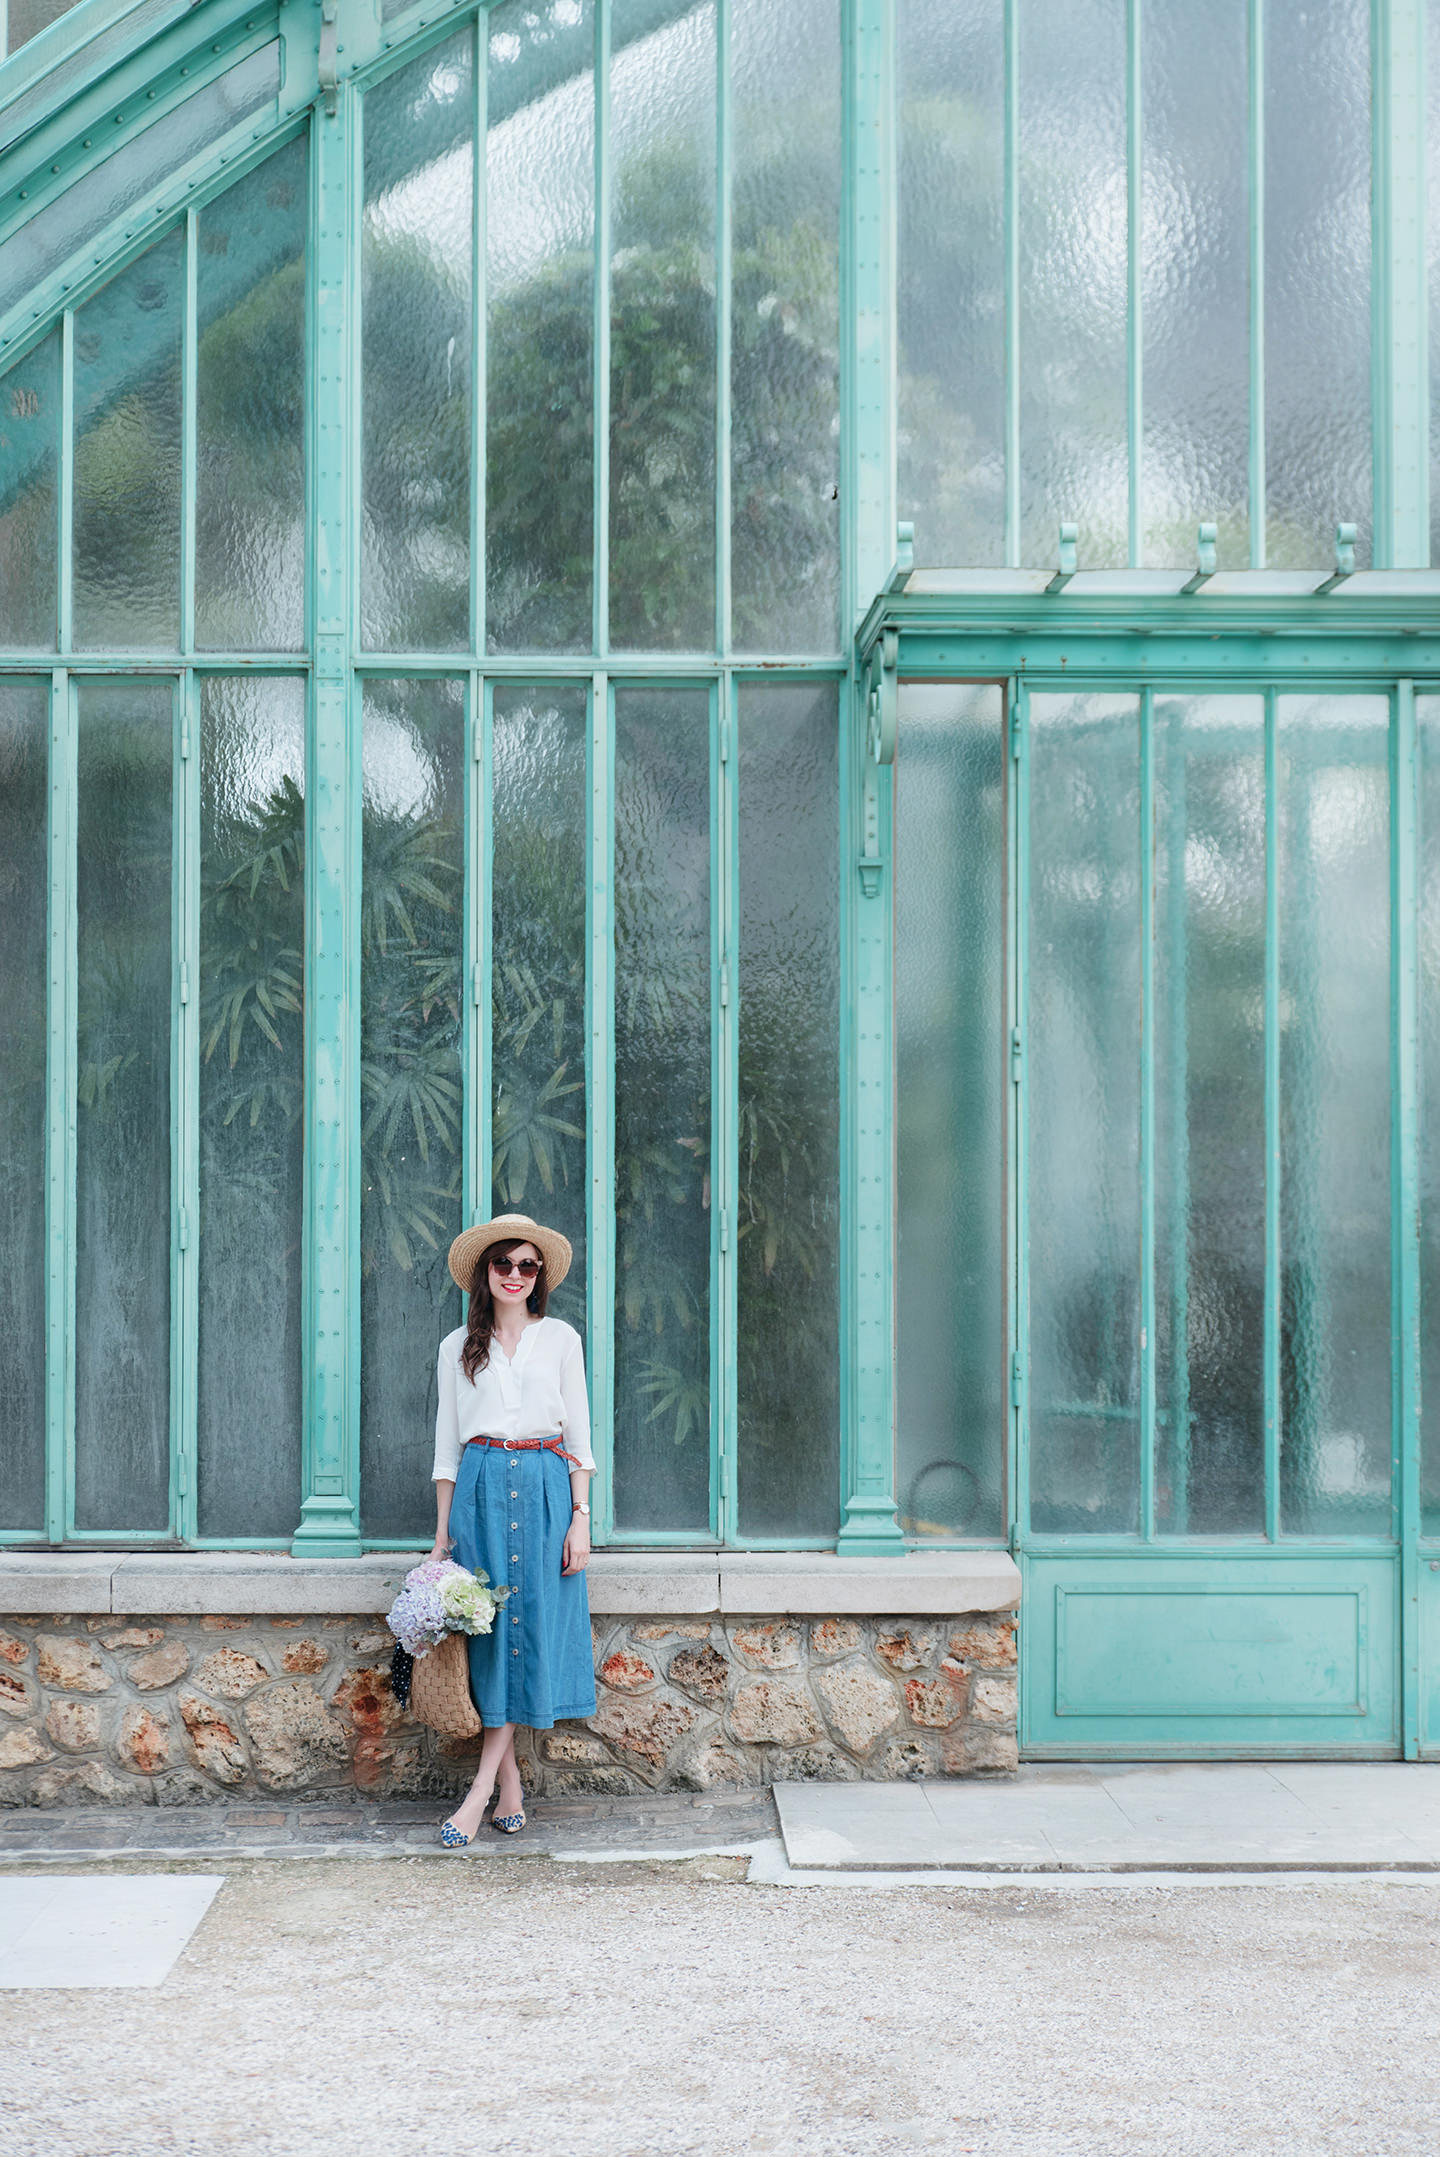 Blog-Mode-And-The-City-Looks-Jardin-Serres-Auteuil-Devernois-6